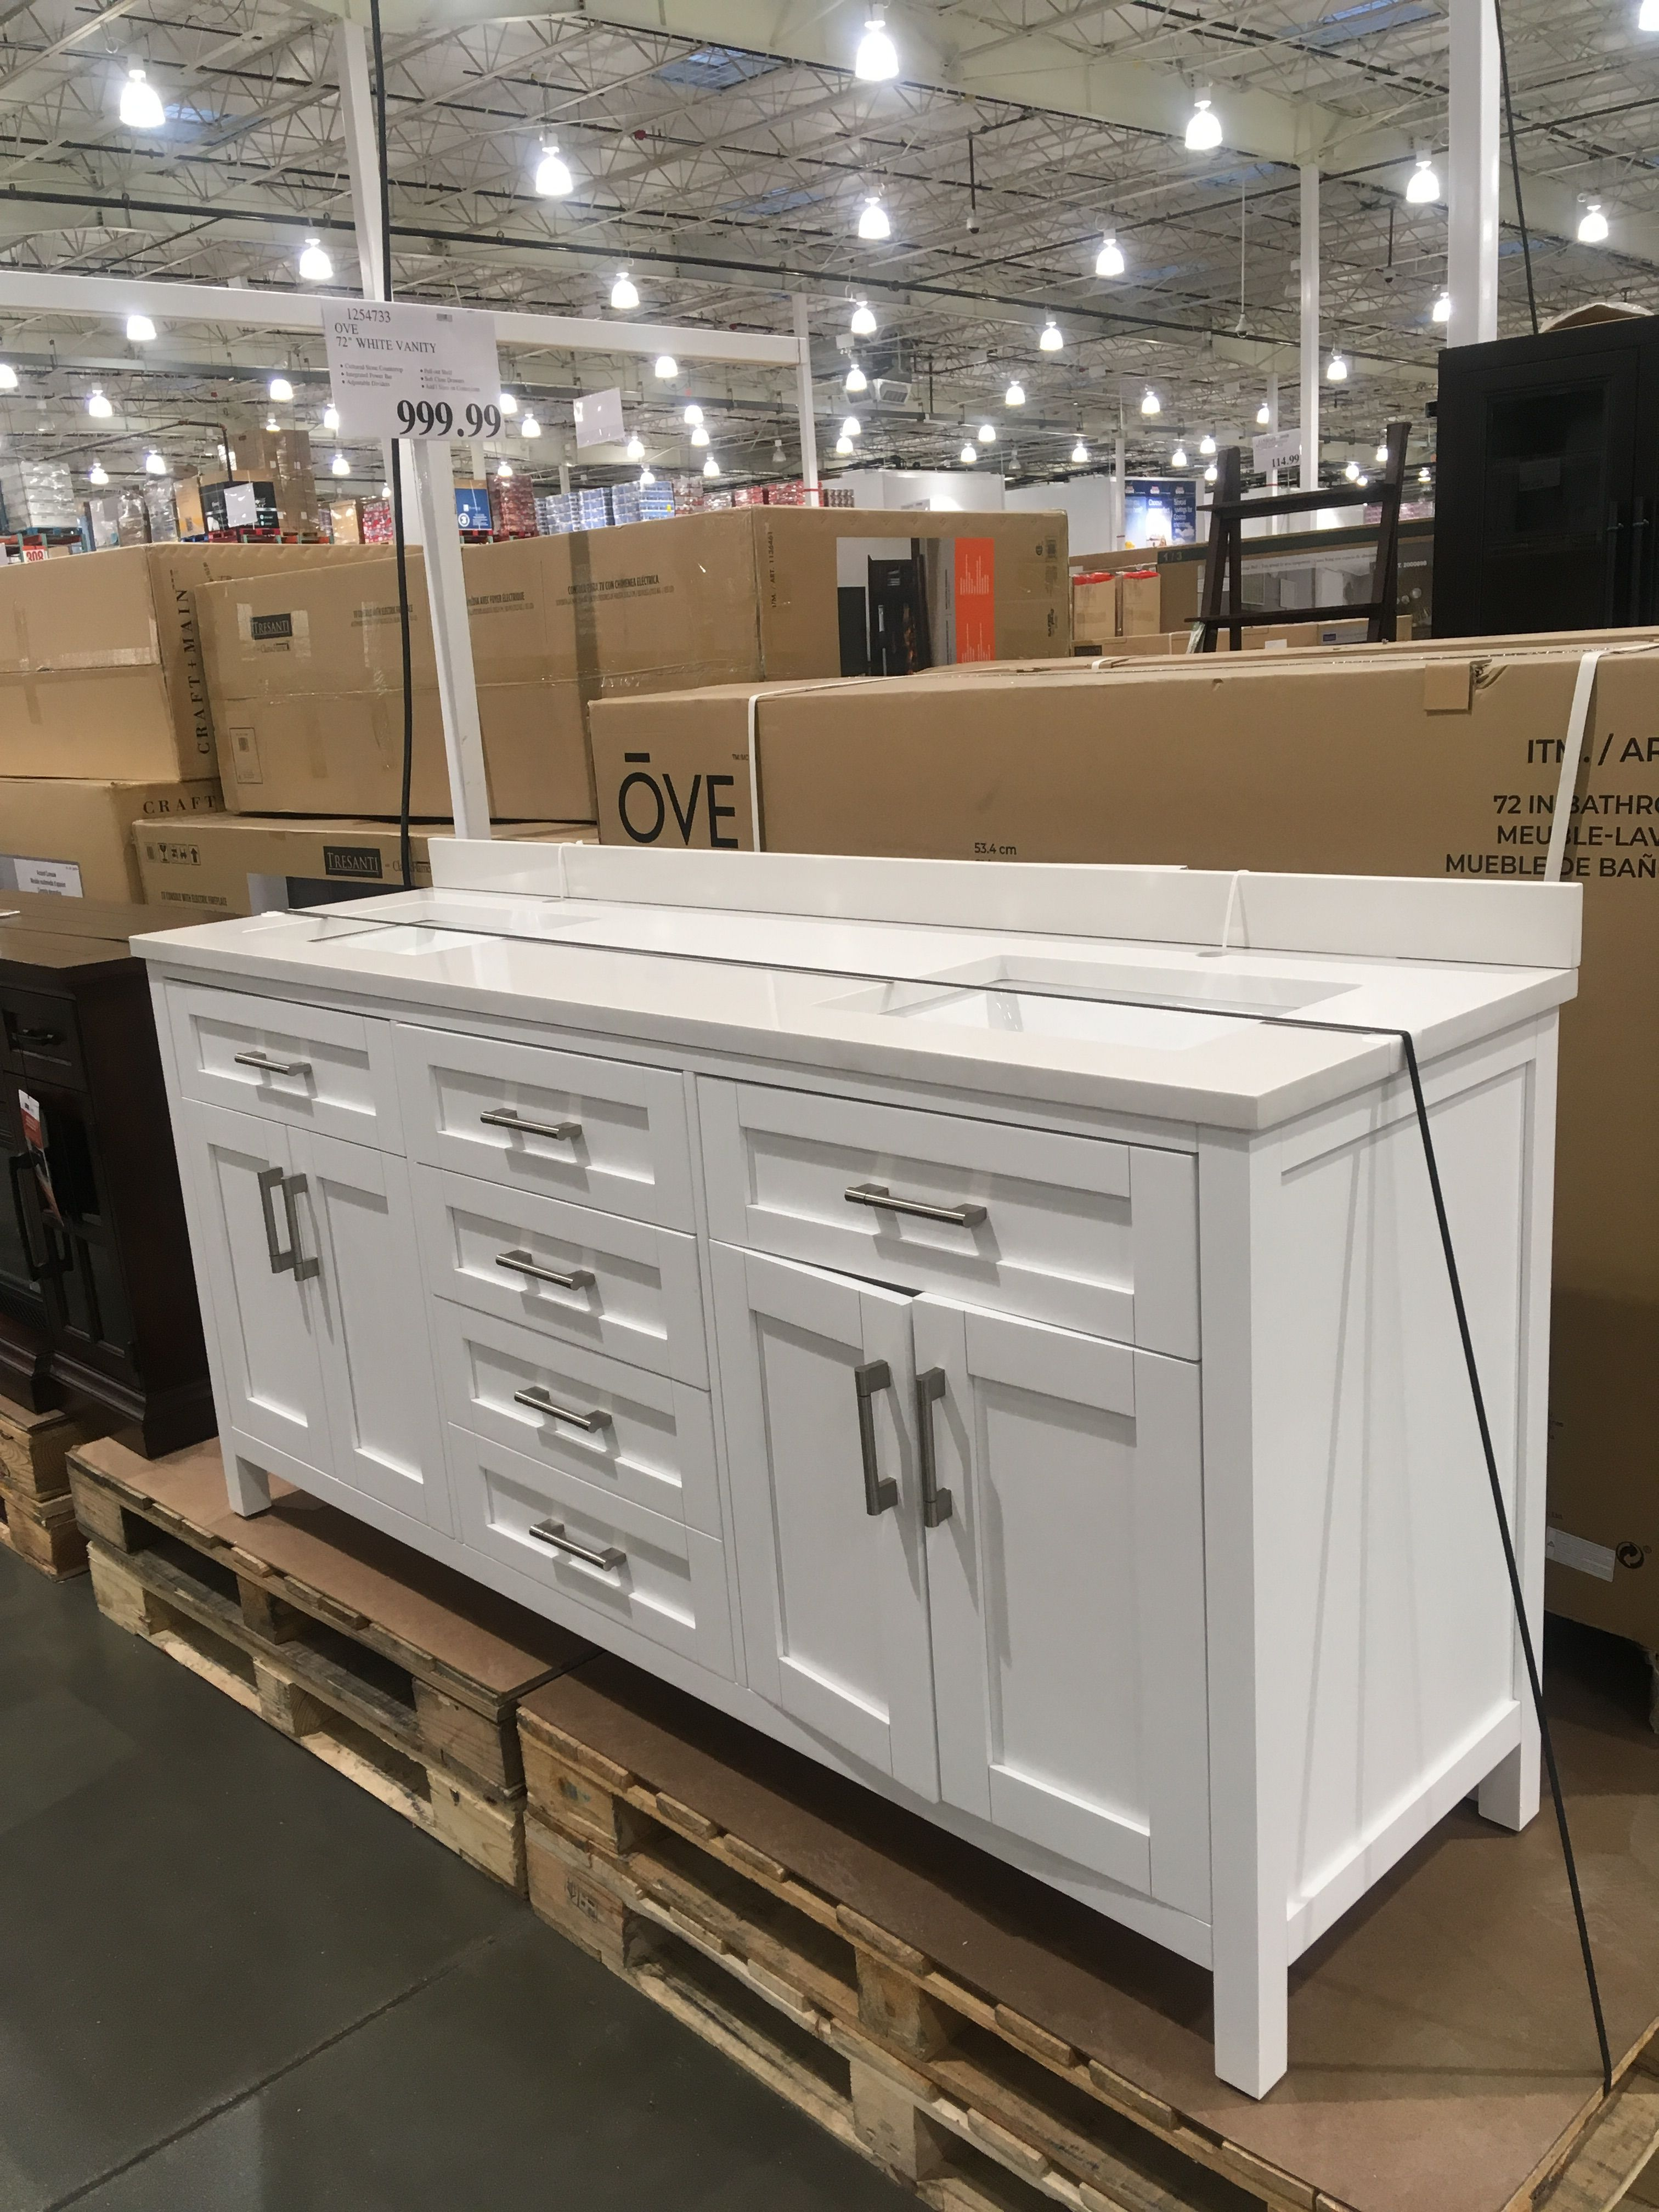 72 Double Vanity At Costco For 999 Includes Sinks And Countertop